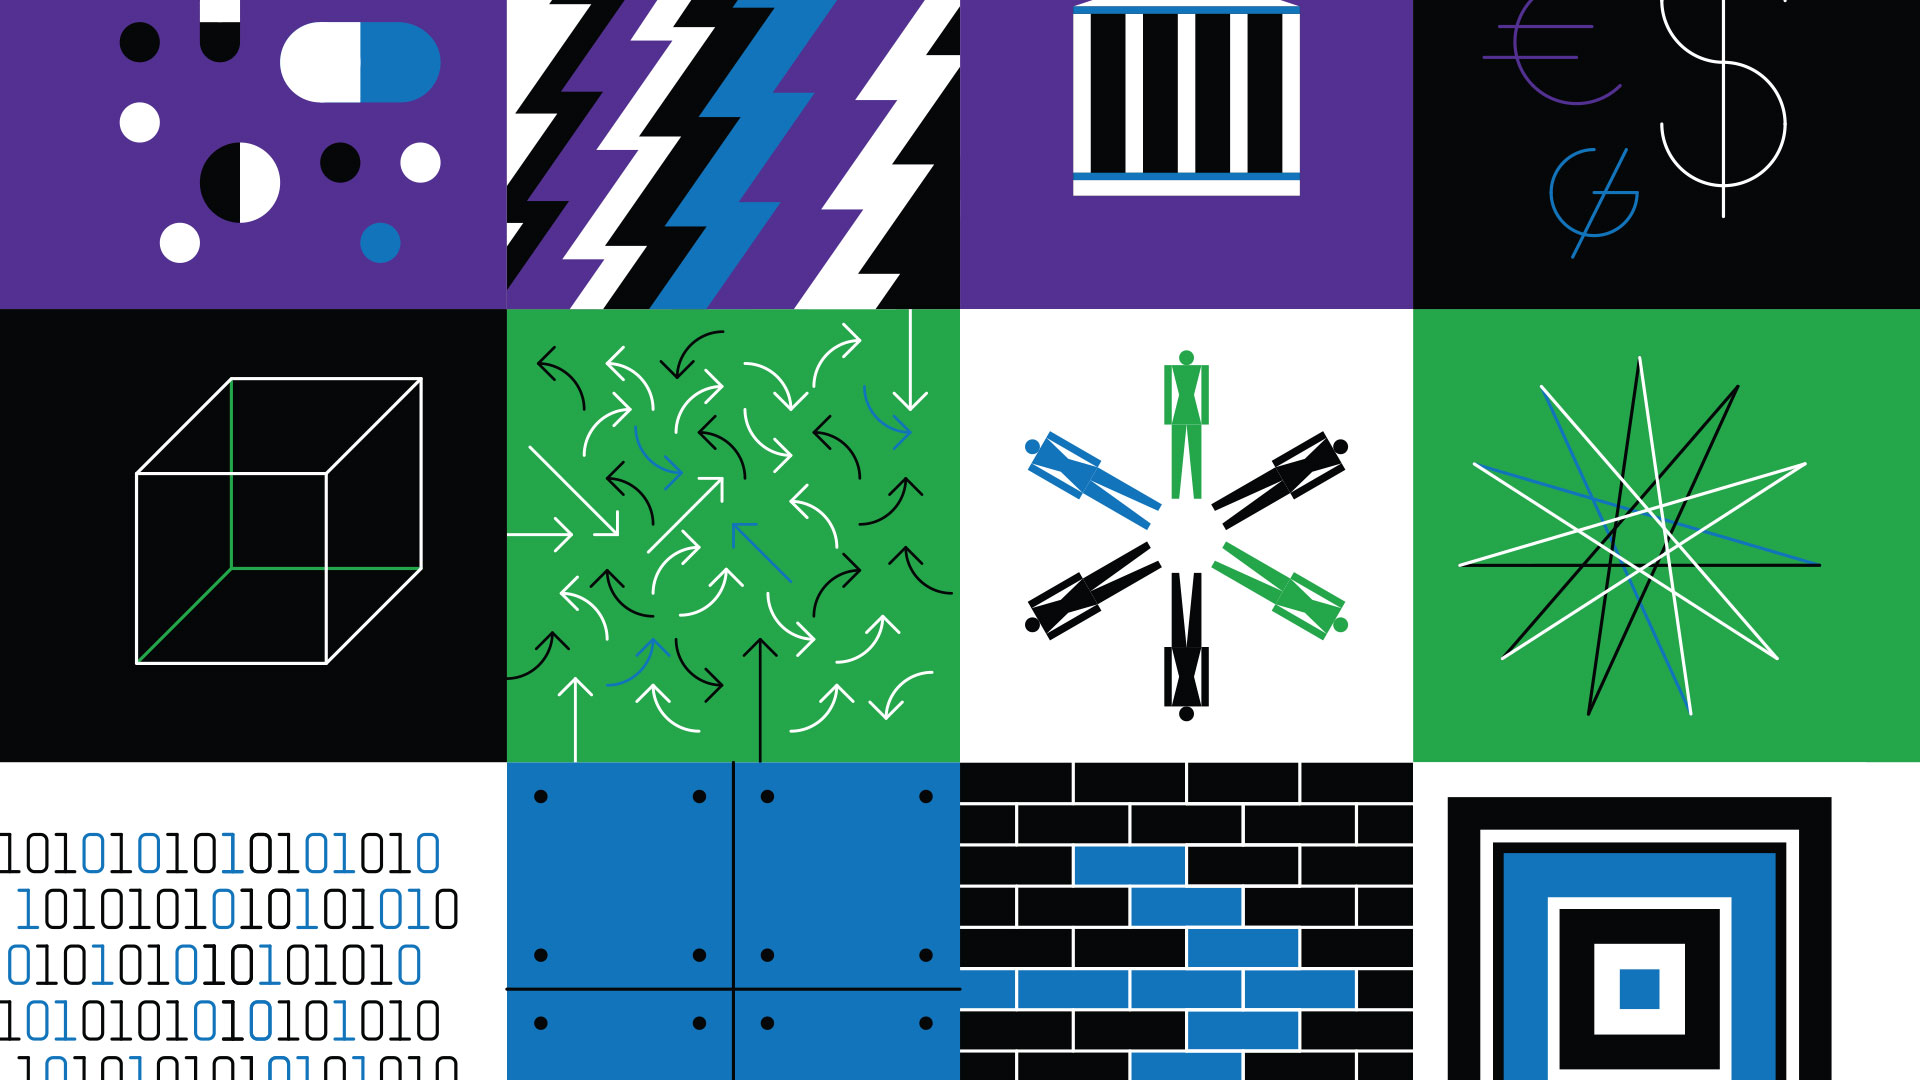 Blue, green, black and purple icons depicting data moving.